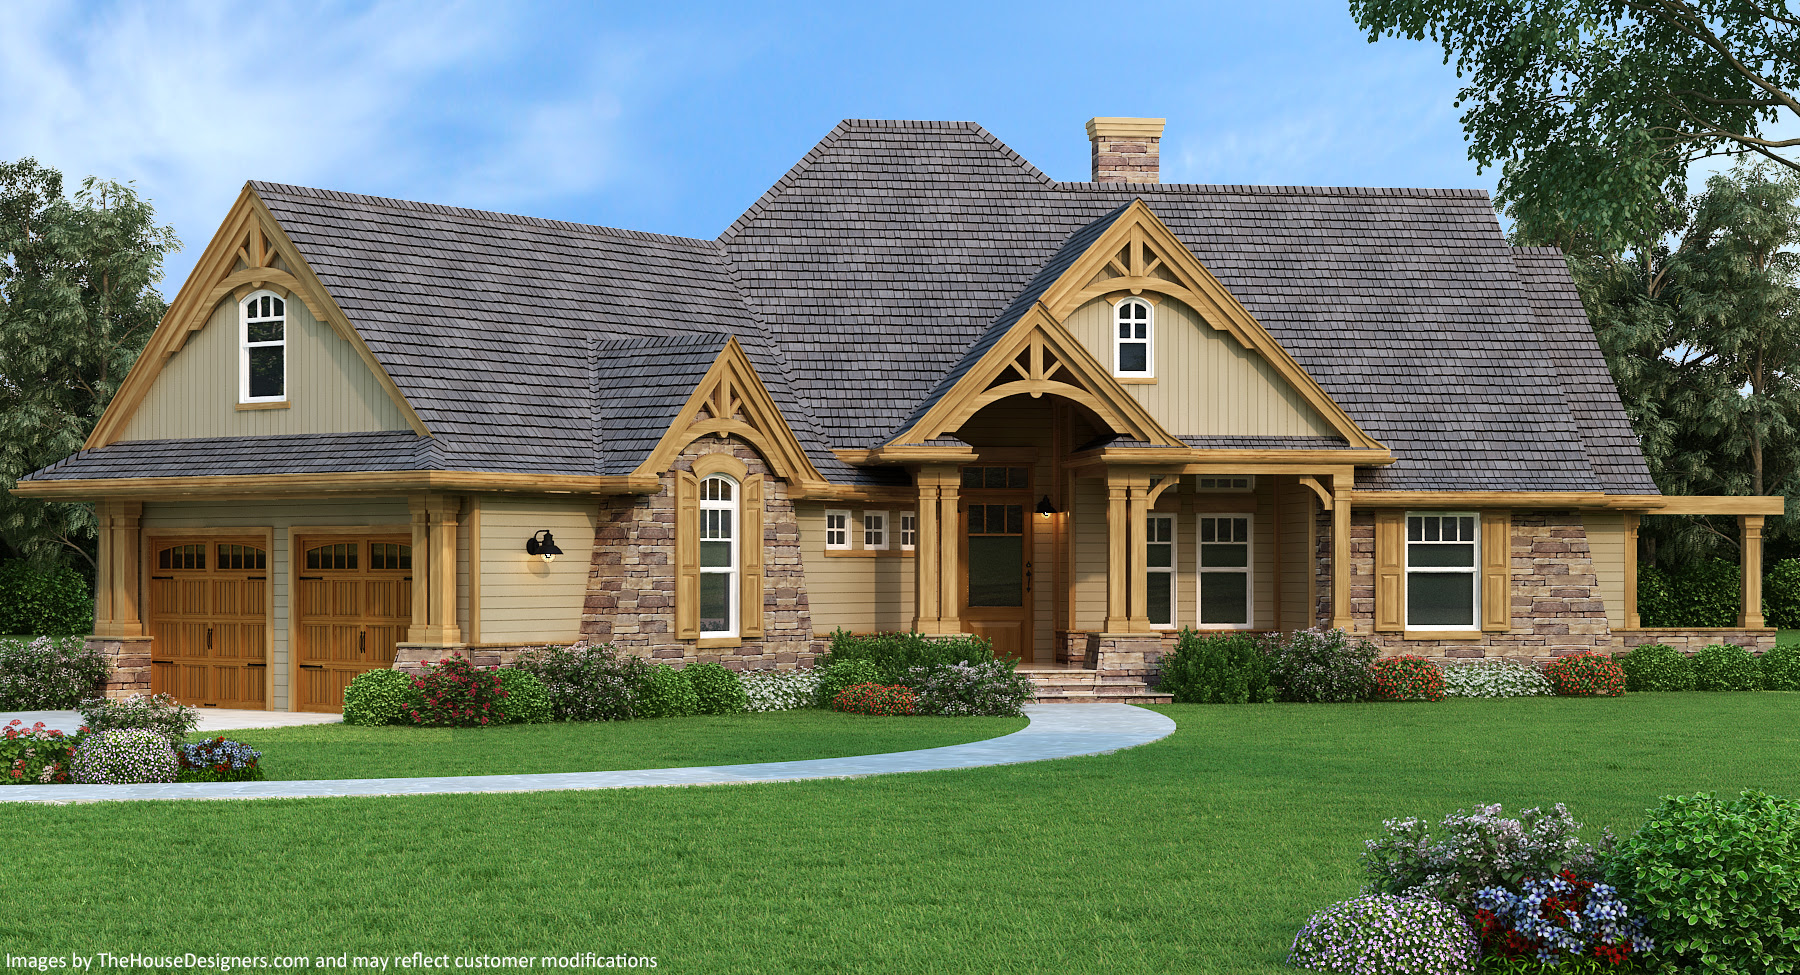 The House Designers Showcases Popular House Plan in Affordable and Luxury Build Options